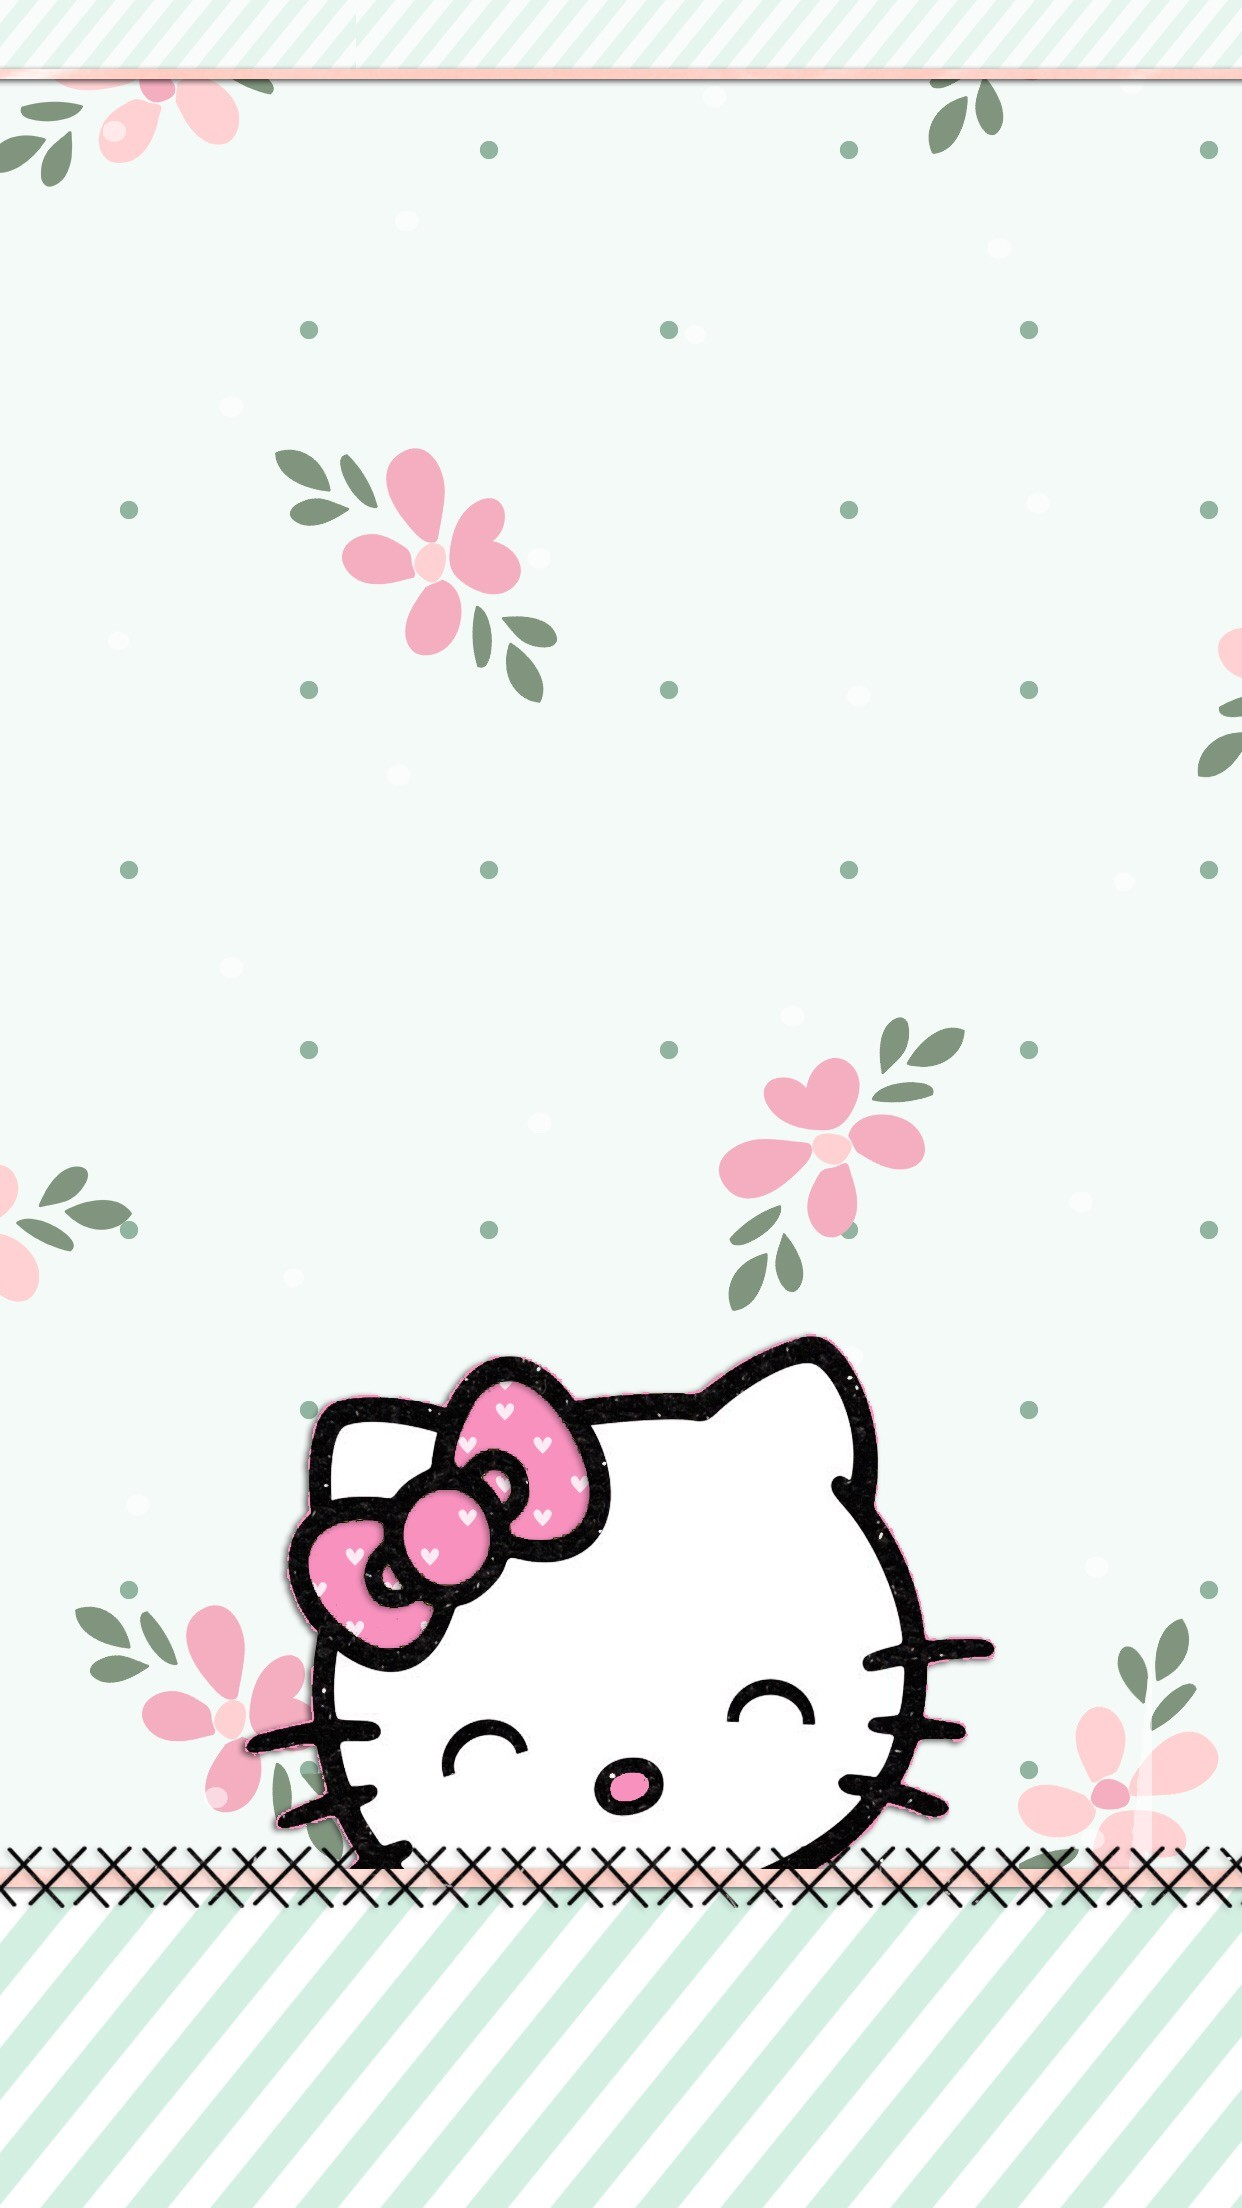 Beautiful Wallpaper Hello Kitty Samsung Galaxy - 929234-cute-wallpapers-of-hello-kitty-1242x2208-720p  Pic_17170.jpg